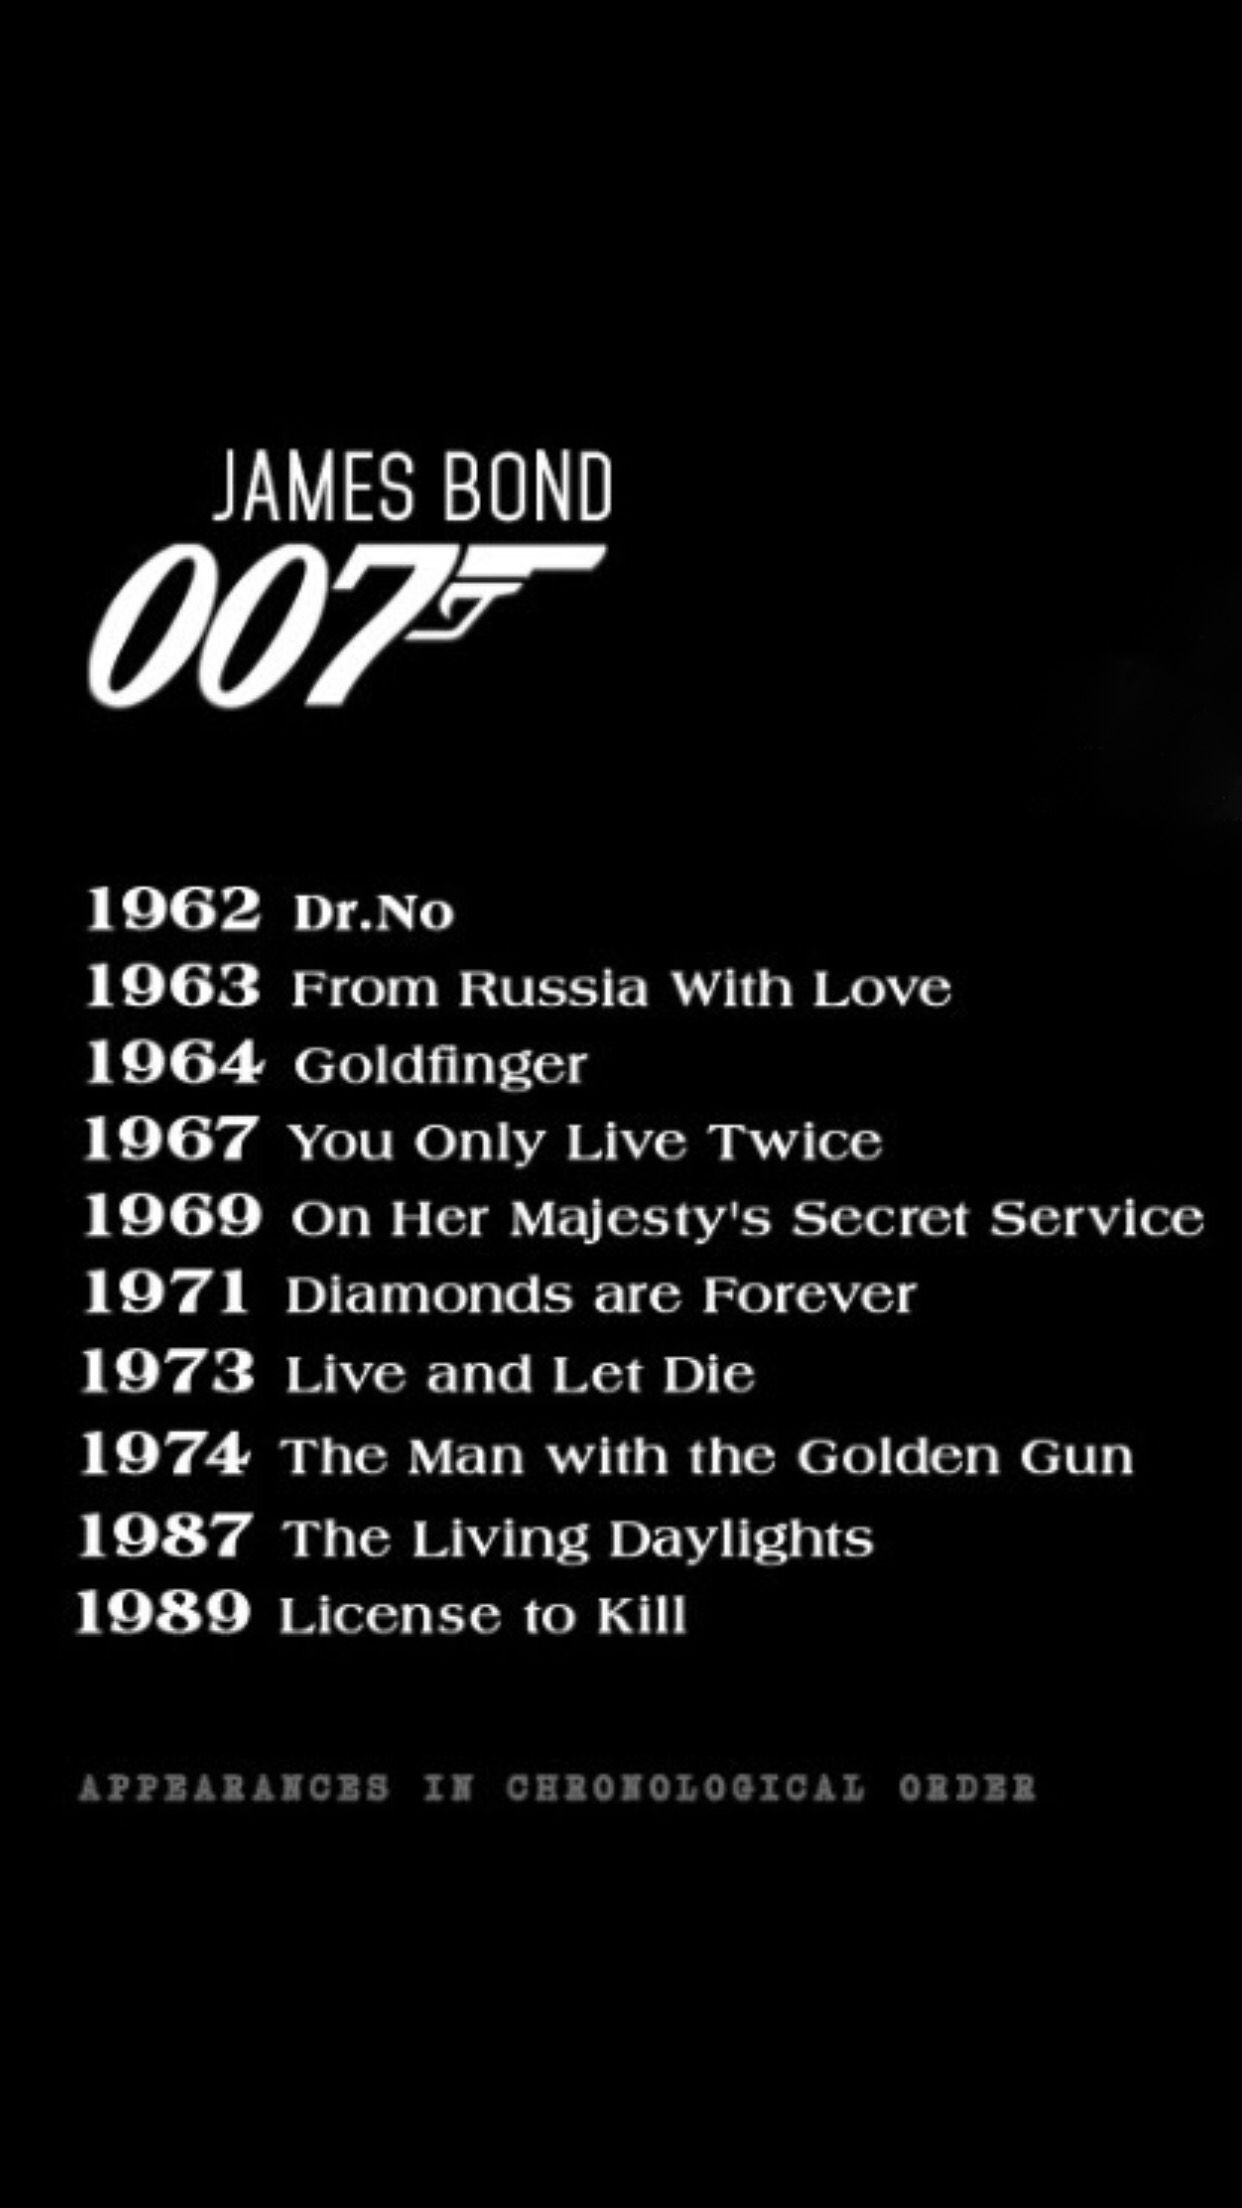 Chronology Of James Bond 007 Movies Featuring Rolex